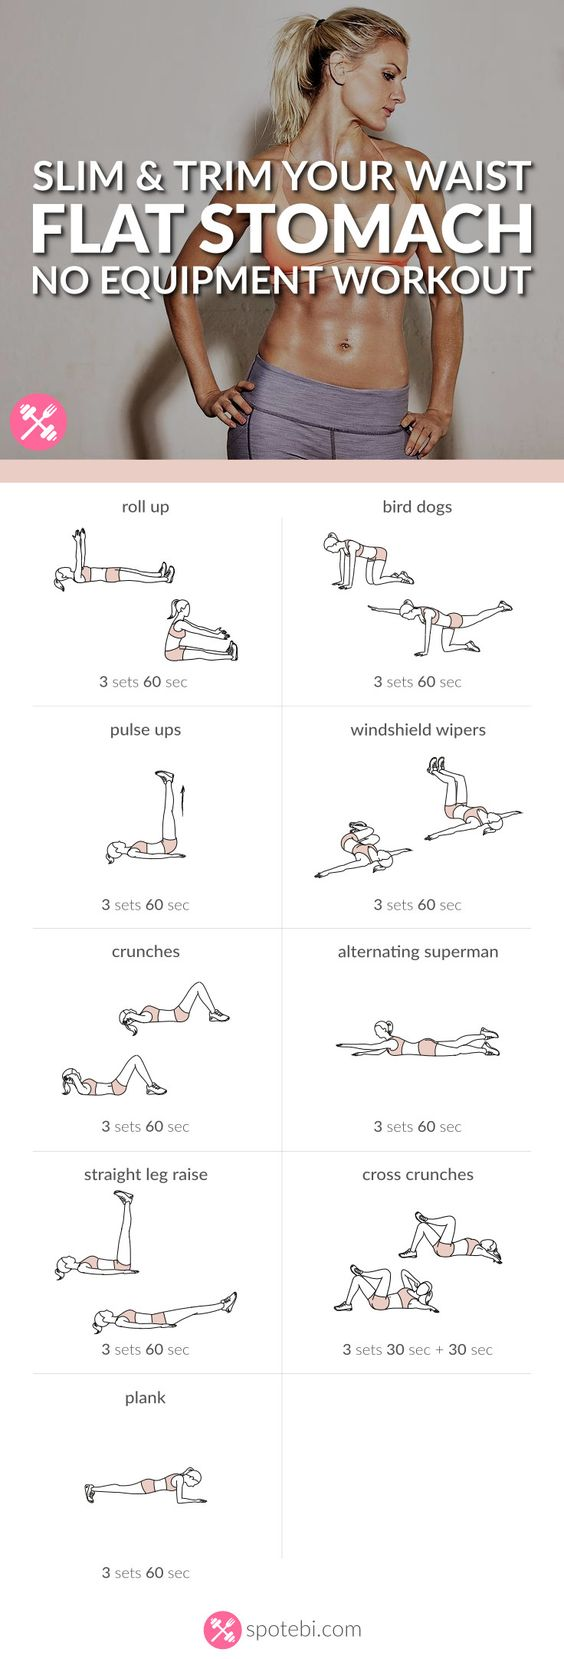 Want to easily whip your tummy into shape? Try this at home flat stomach workout for women, to sculpt your abs in no time, and get a slim, toned and trim belly. http://www.spotebi.com/workout-routines/flat-stomach-workout-slim-trim-waist/